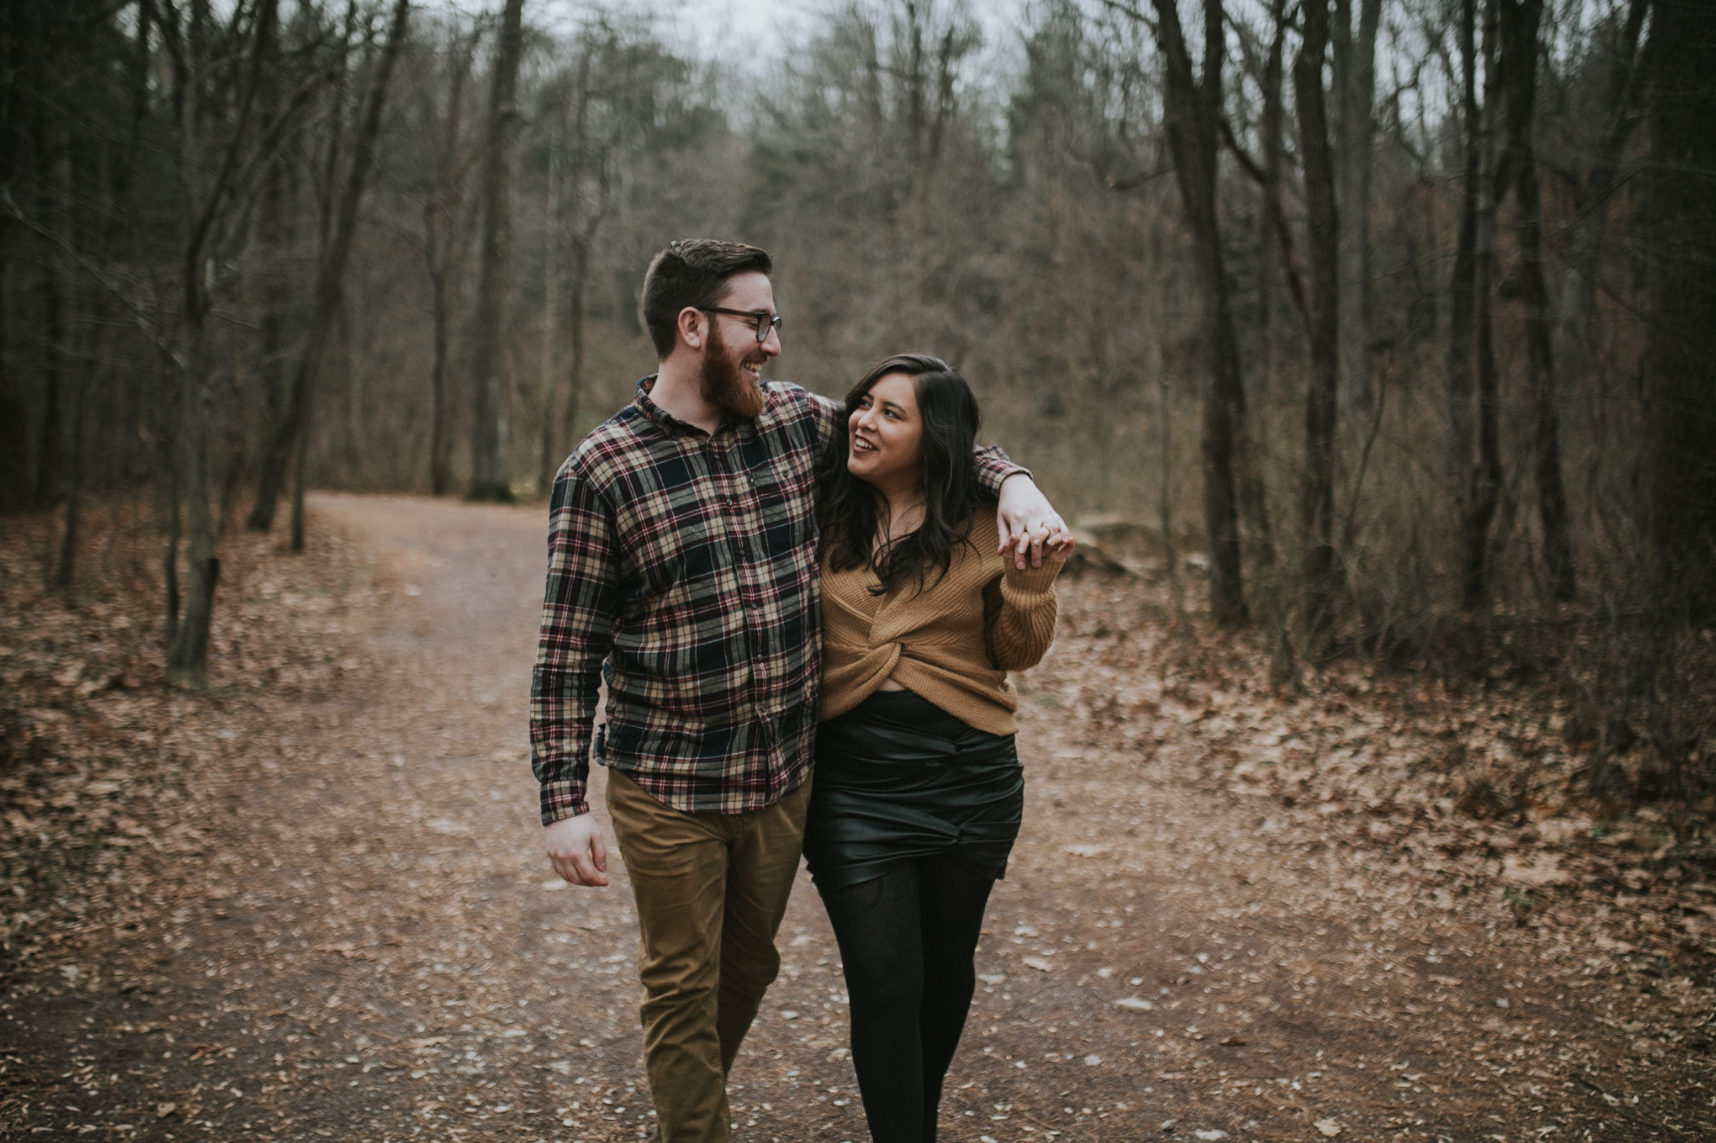 matt-natalia-winter-woods-engagement-session-pennsylvania-wedding-photographer-12